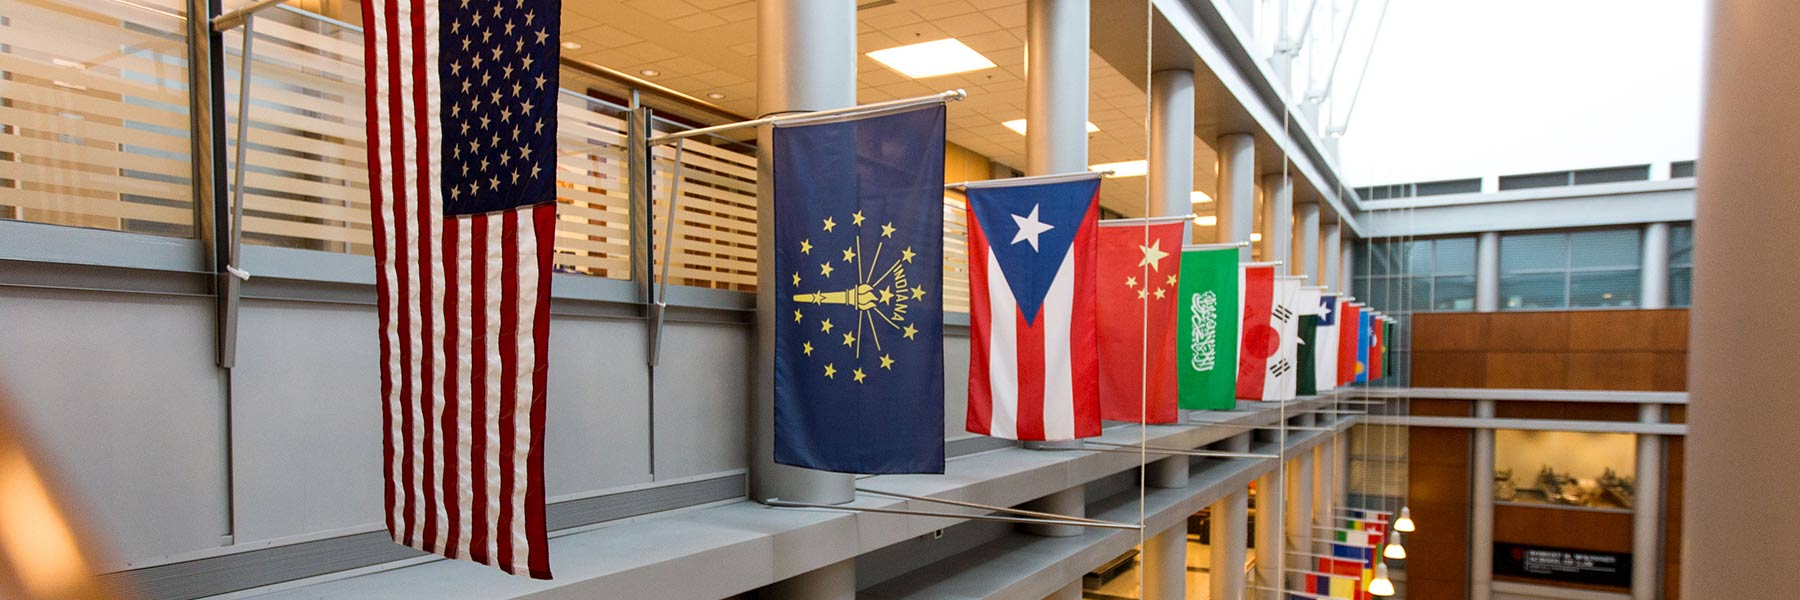 International flags hanging from the IUPUI Campus Center balcony